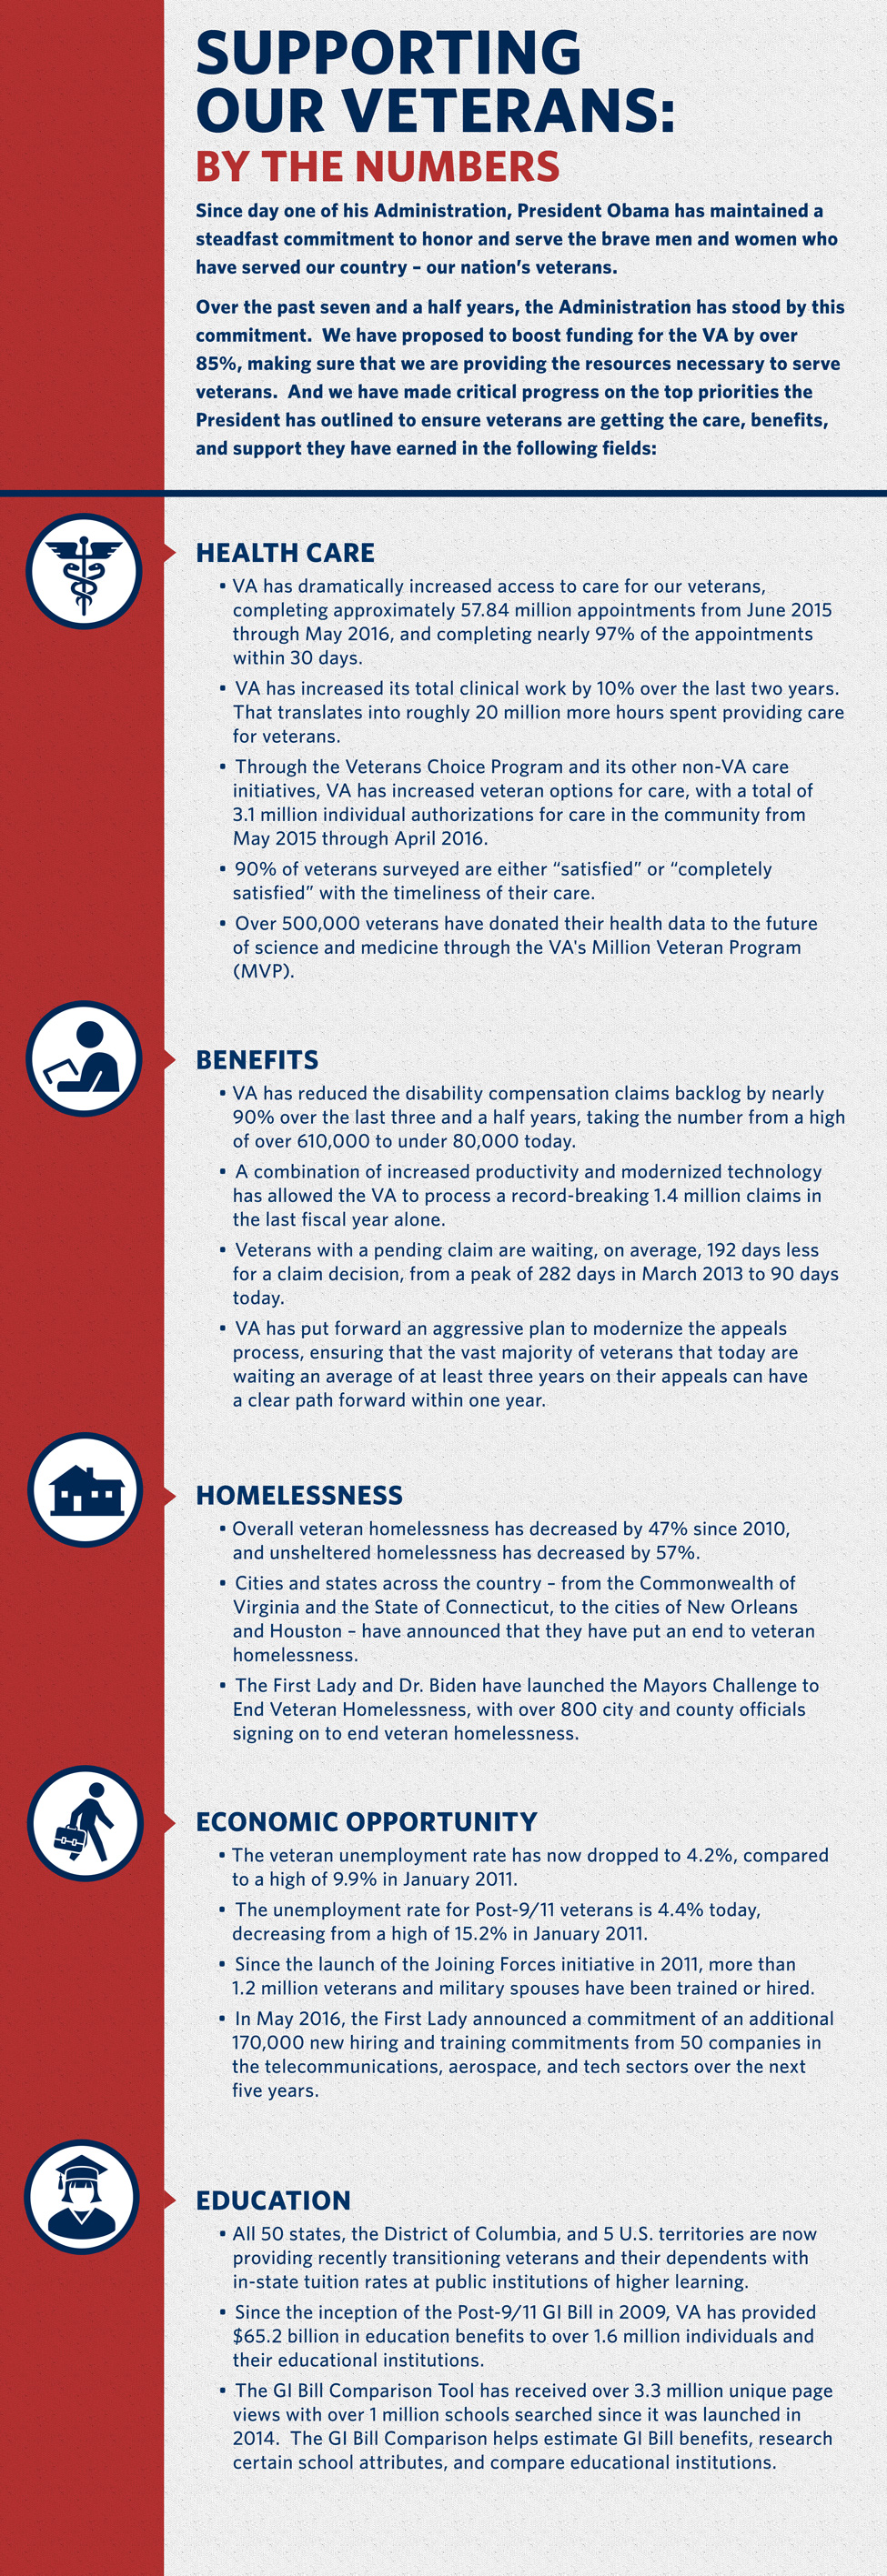 Infographic: How we're supporting our veterans